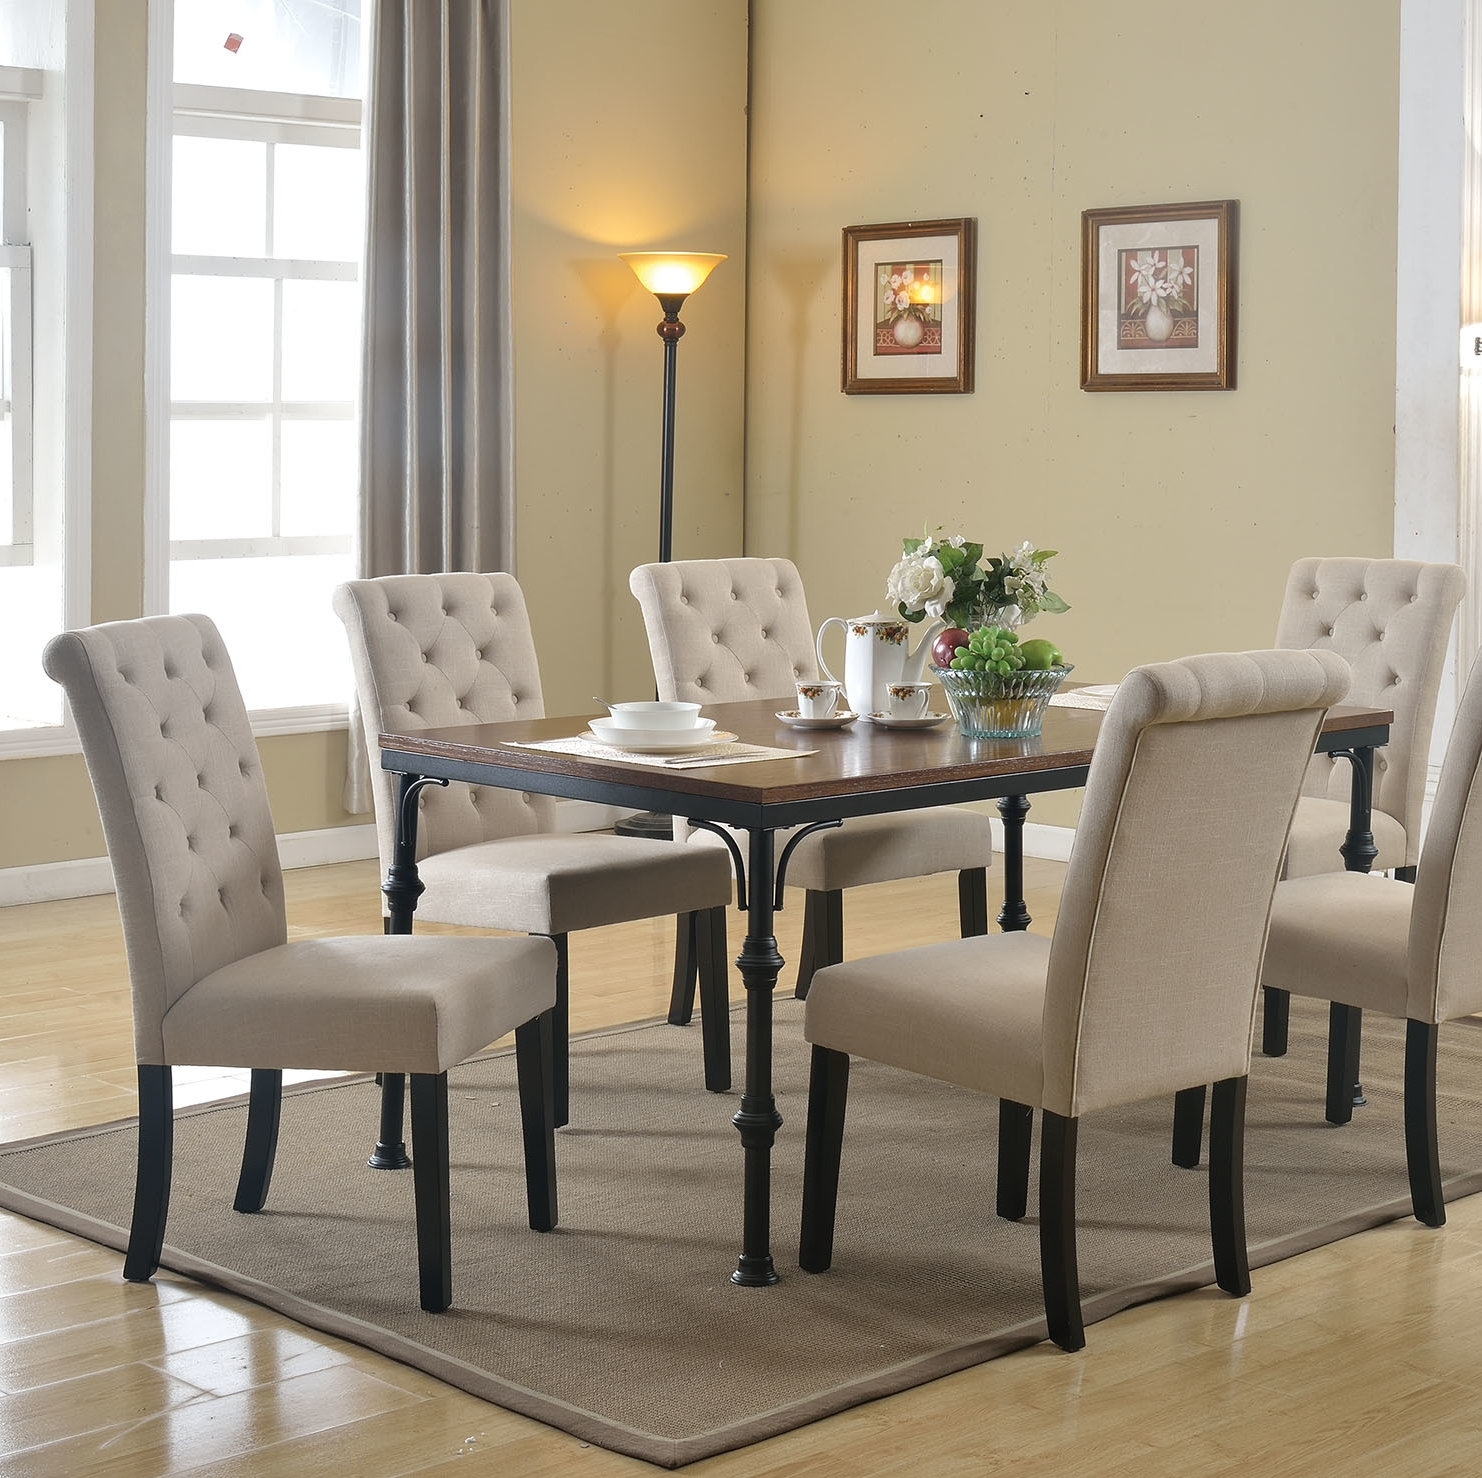 Gracie Oaks Tyerell 7 Piece Dining Set | Wayfair Within Best And Newest Caira Black 7 Piece Dining Sets With Upholstered Side Chairs (Photo 14 of 20)